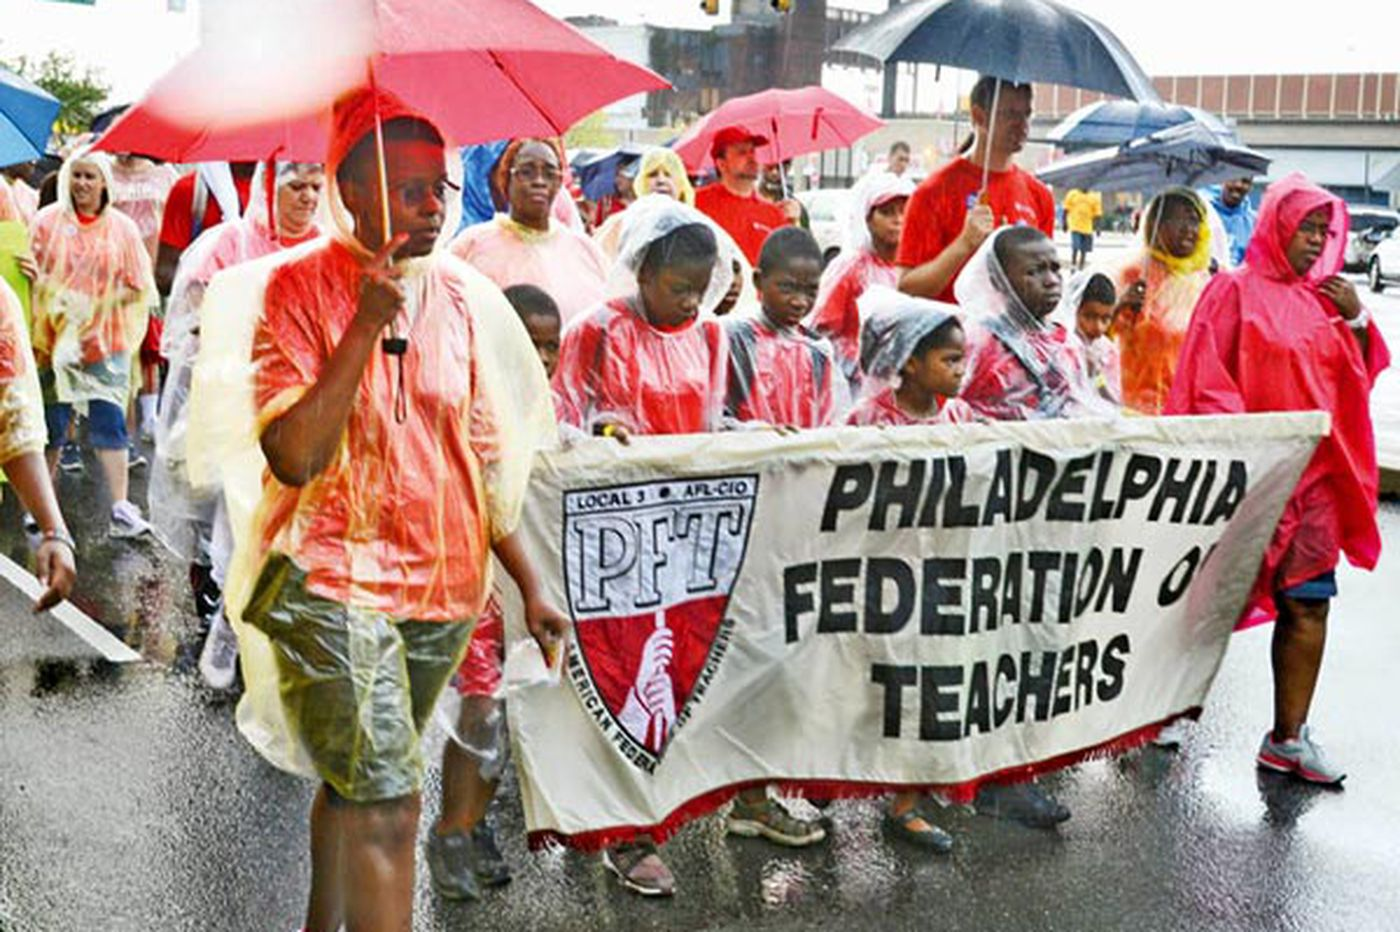 Phila. teachers, facing first day of school, vote to continue contract talks